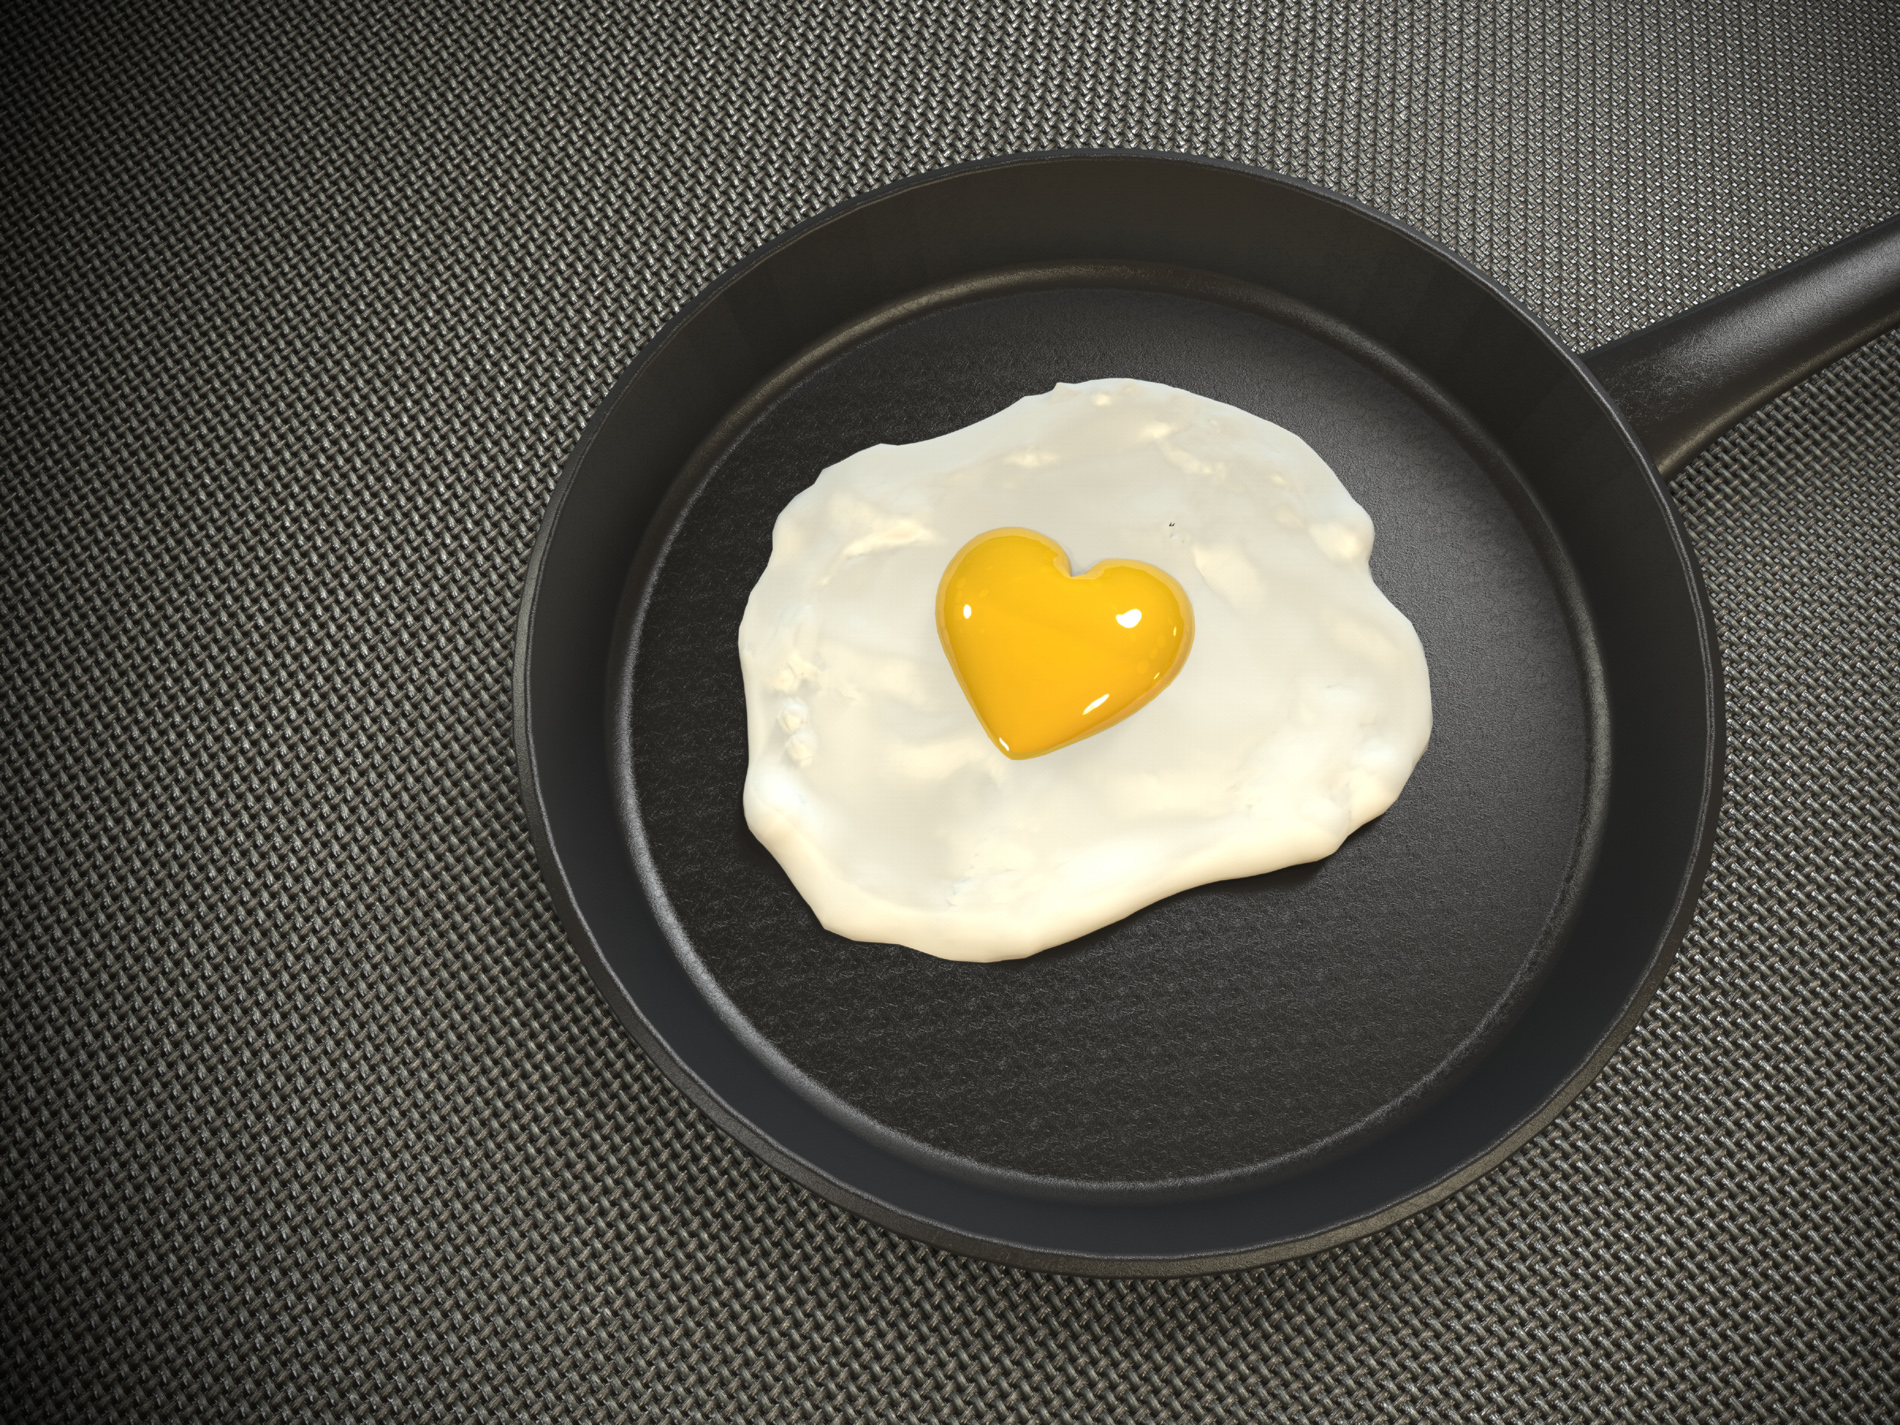 In a frying pan, heart-shaped fried eggs 52618